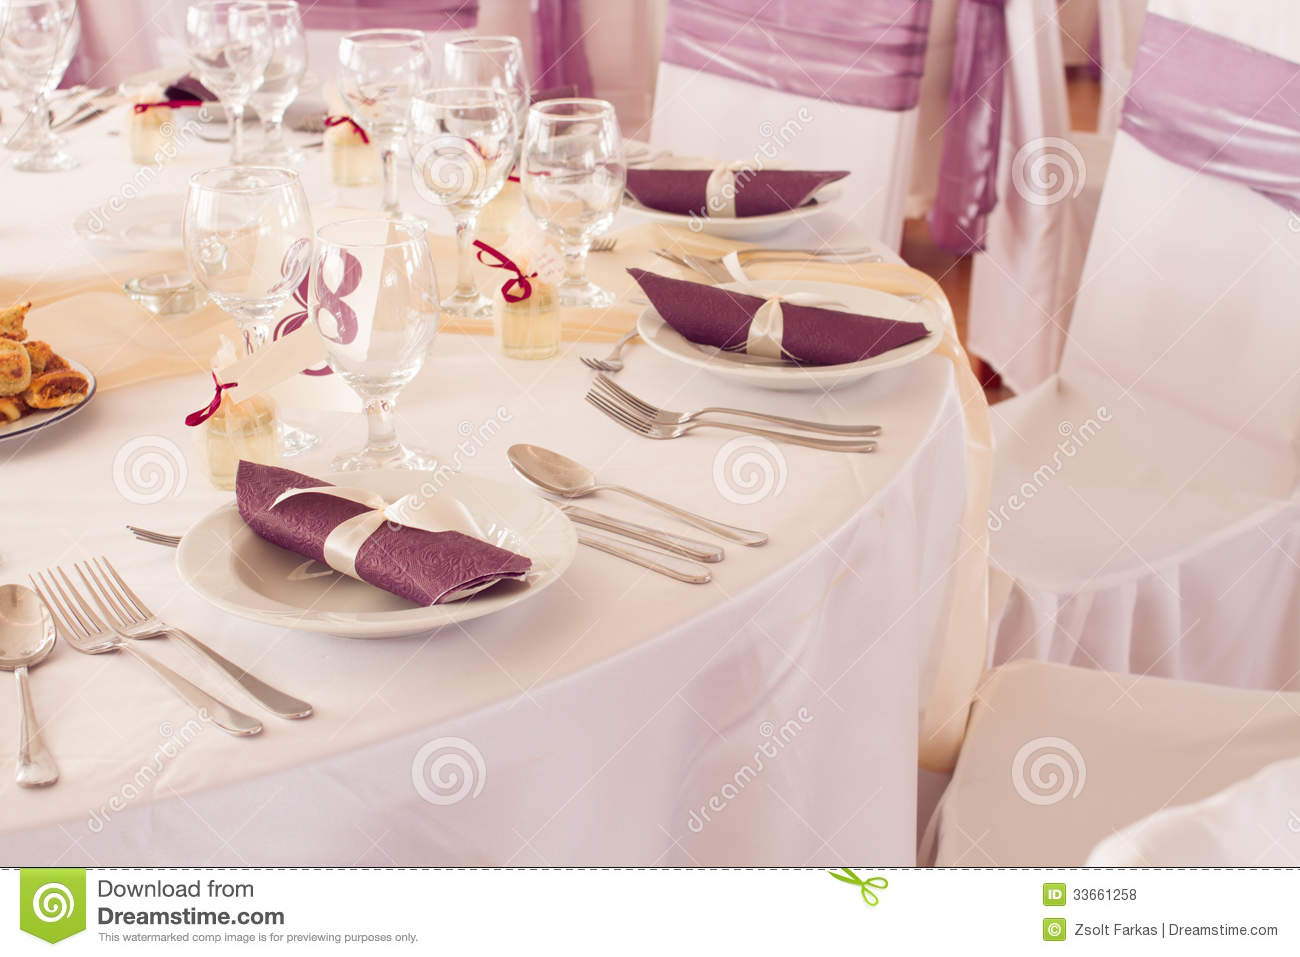 Wedding Tables Set For Fine Dining Or Another Catered Event Royalty Free Stoc